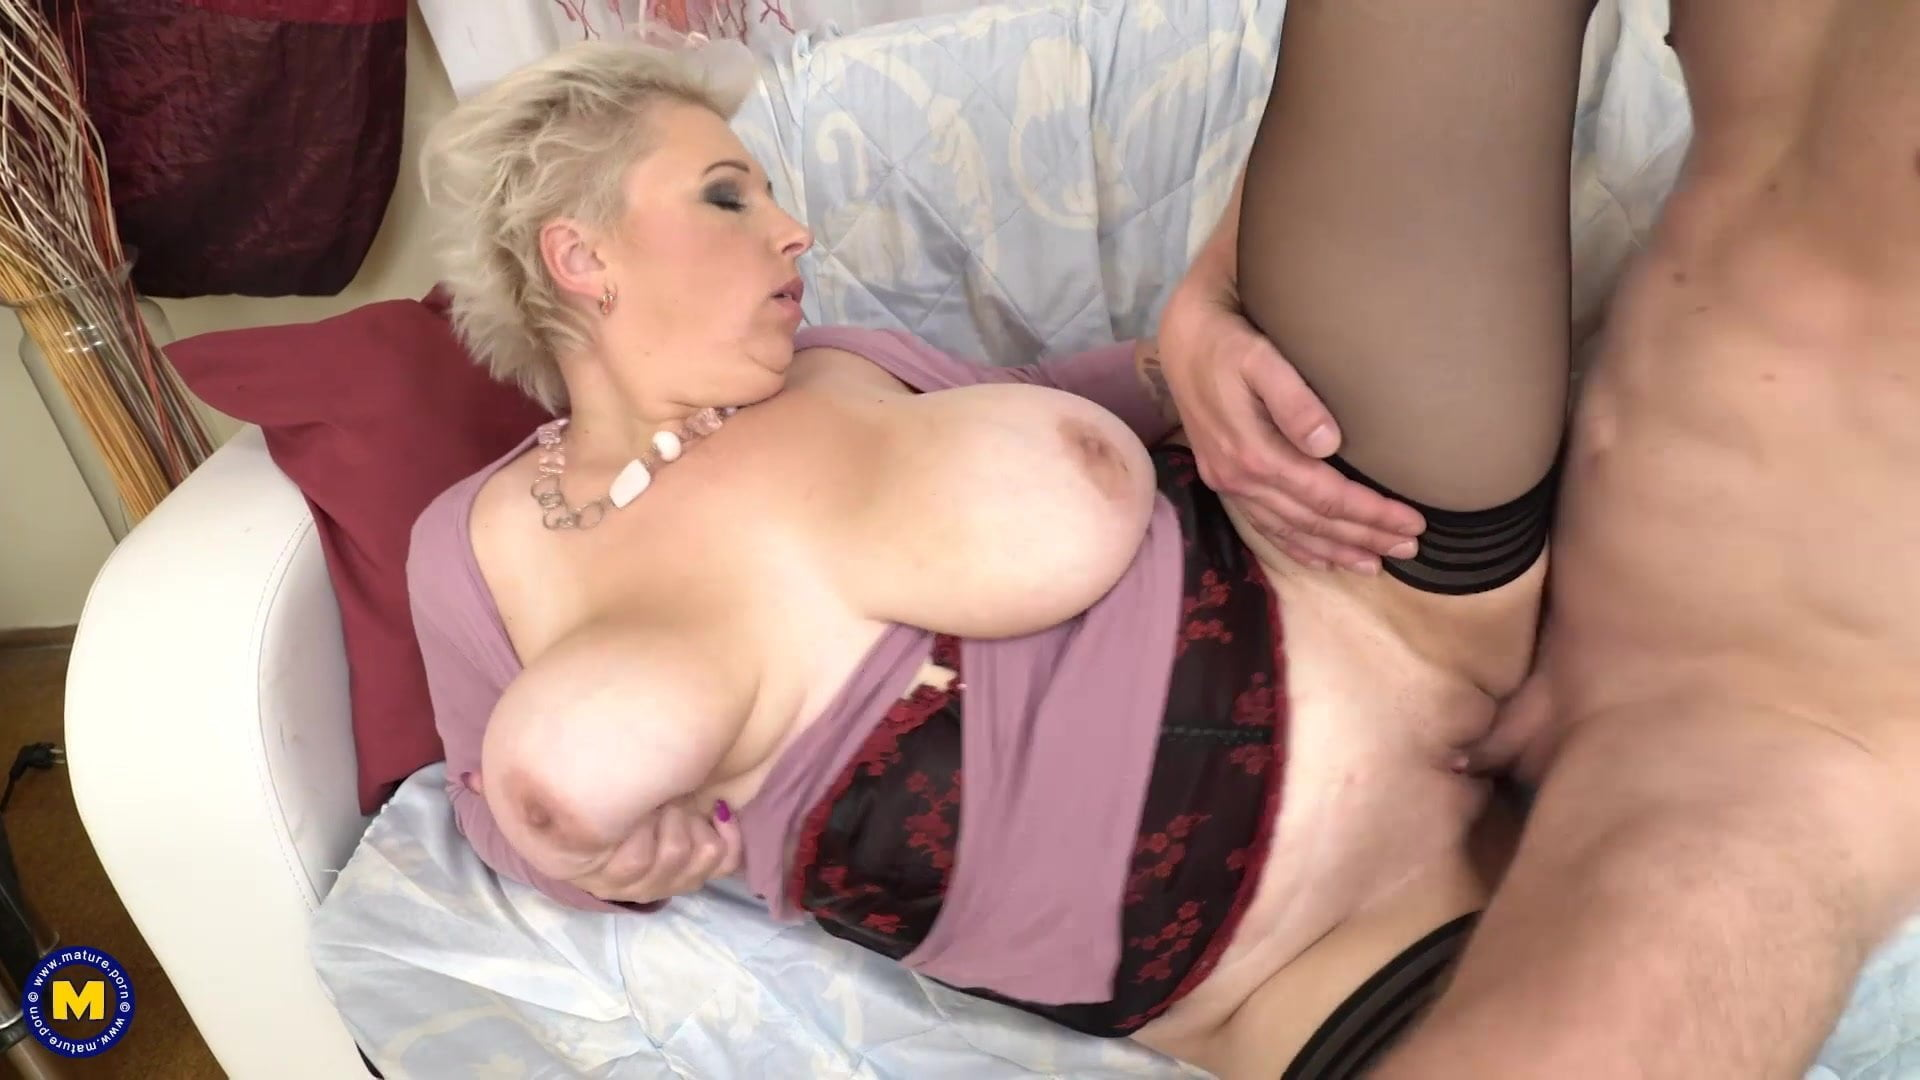 viva hot babes nude first time